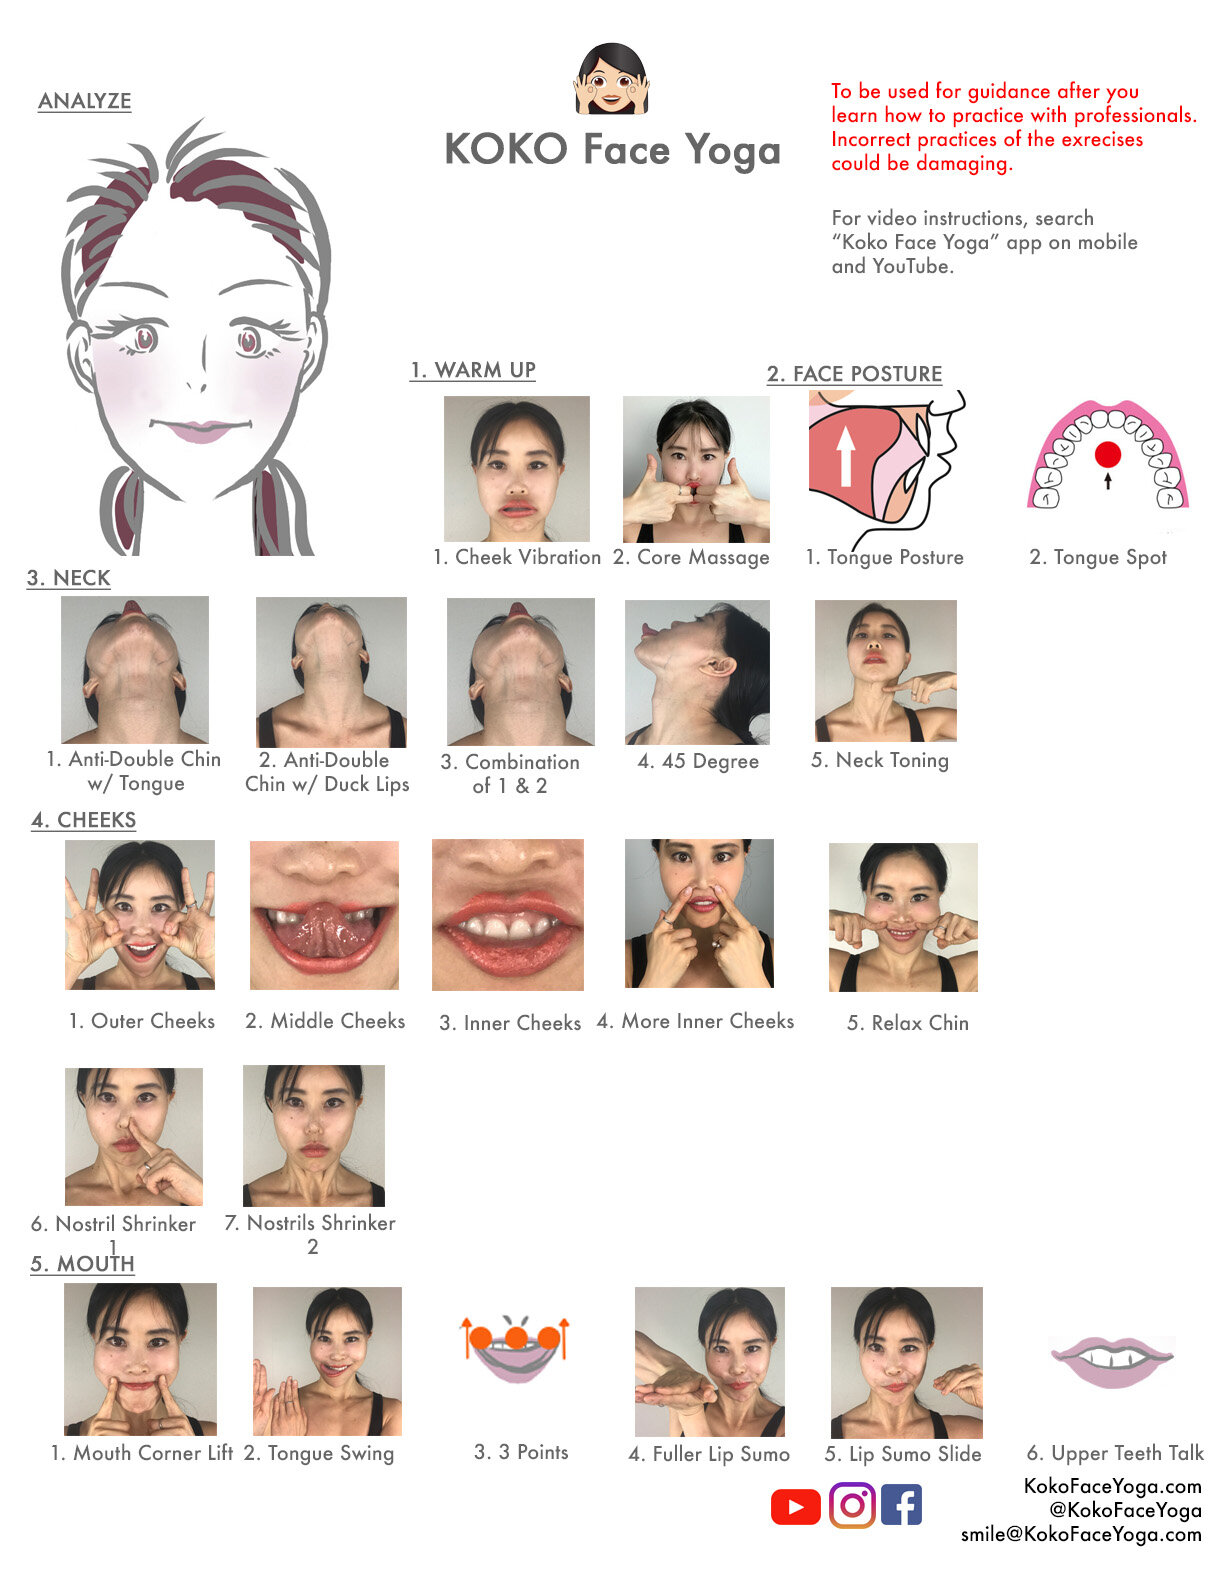 Face Yoga Poses Front Koko Oct 2019.jpg